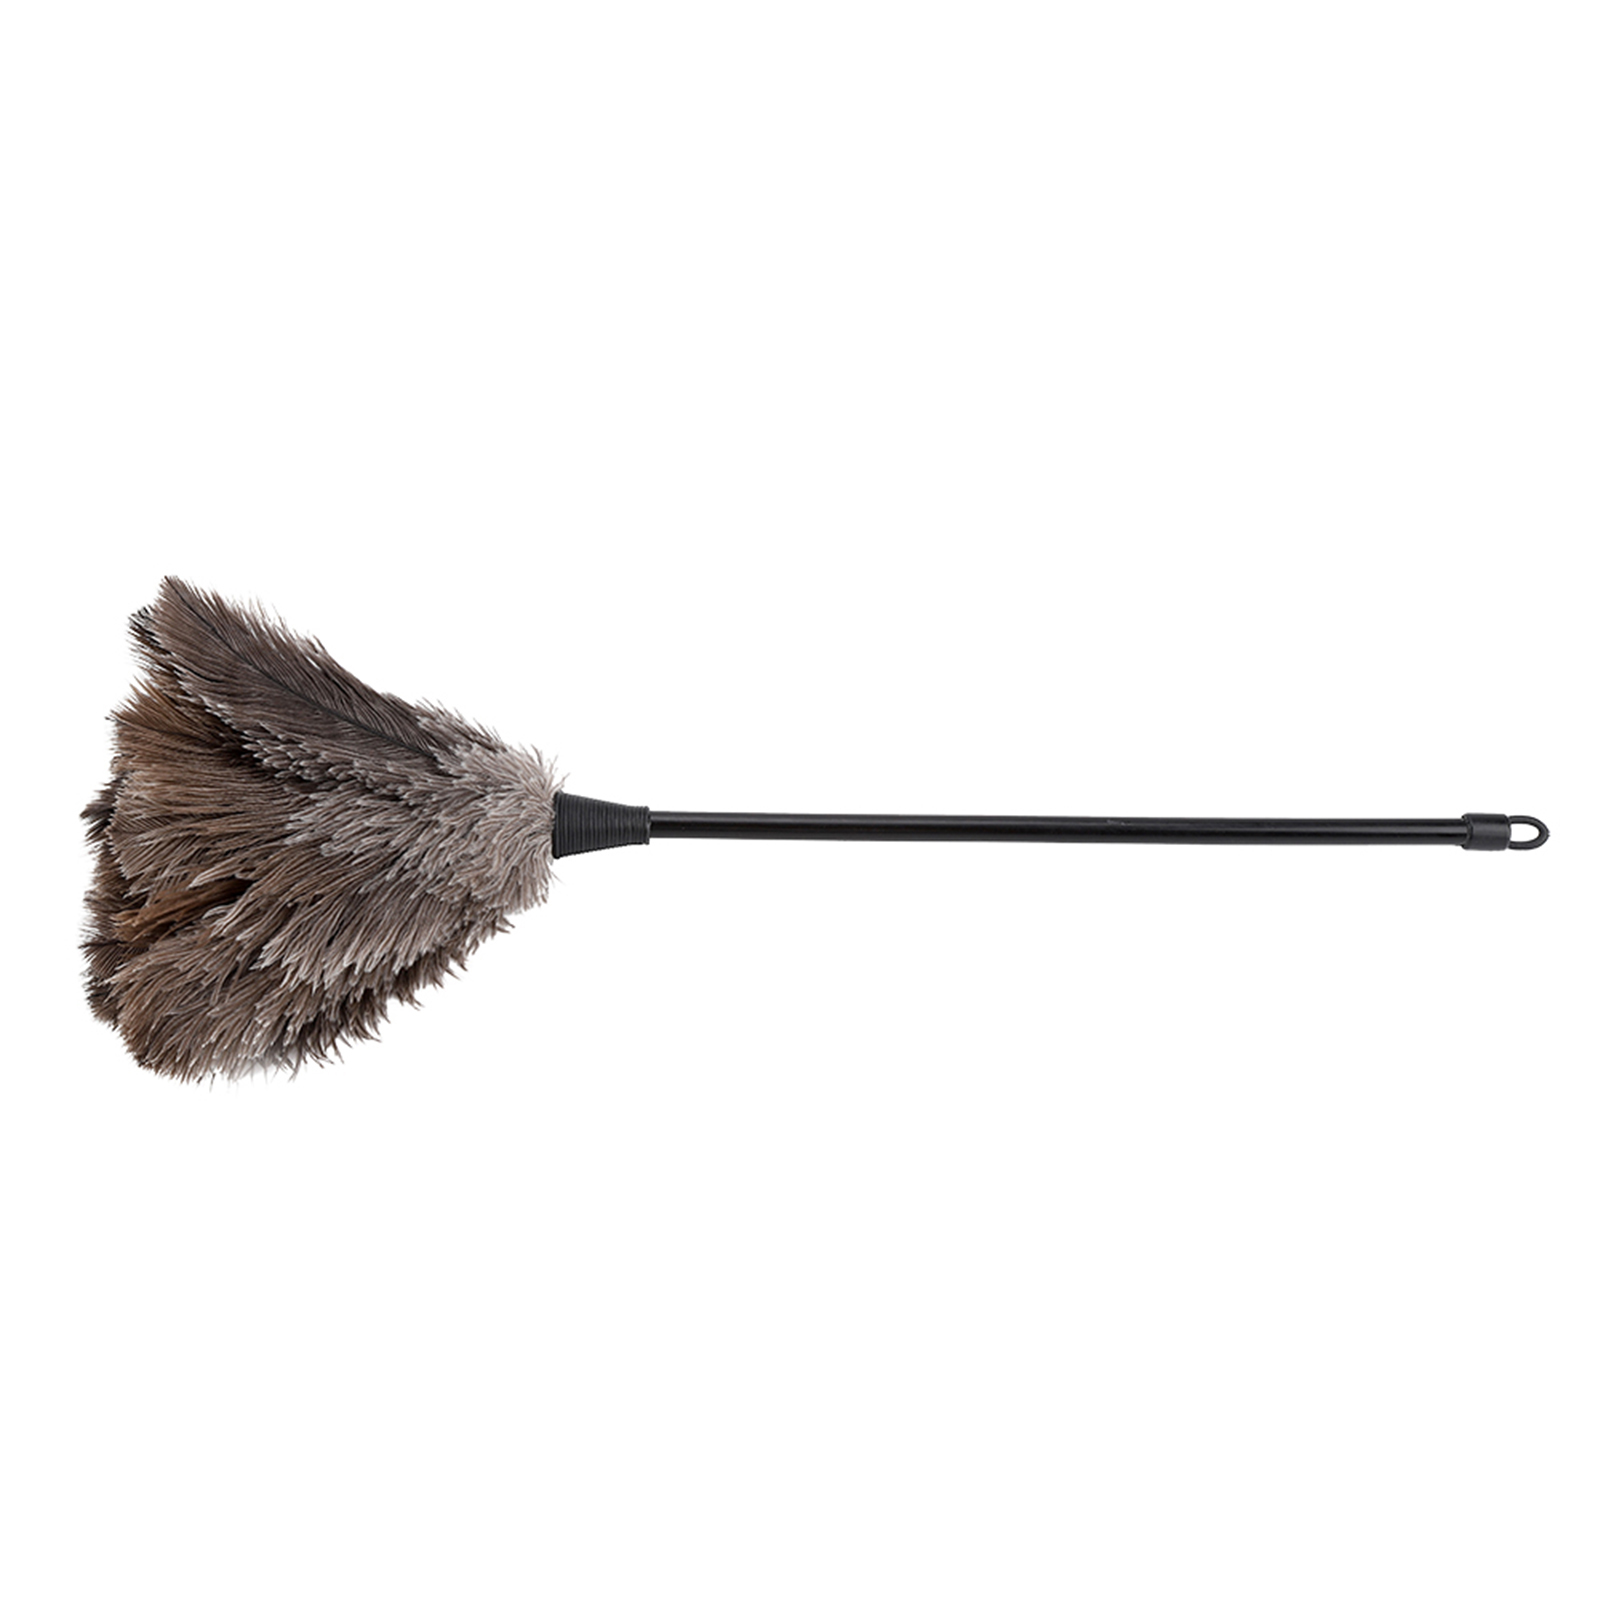 Anti-static-Wool-Ostrich-Feather-Fur-Brush-Duster-Dust-Cleaning-Tool-Wood-Handle thumbnail 27